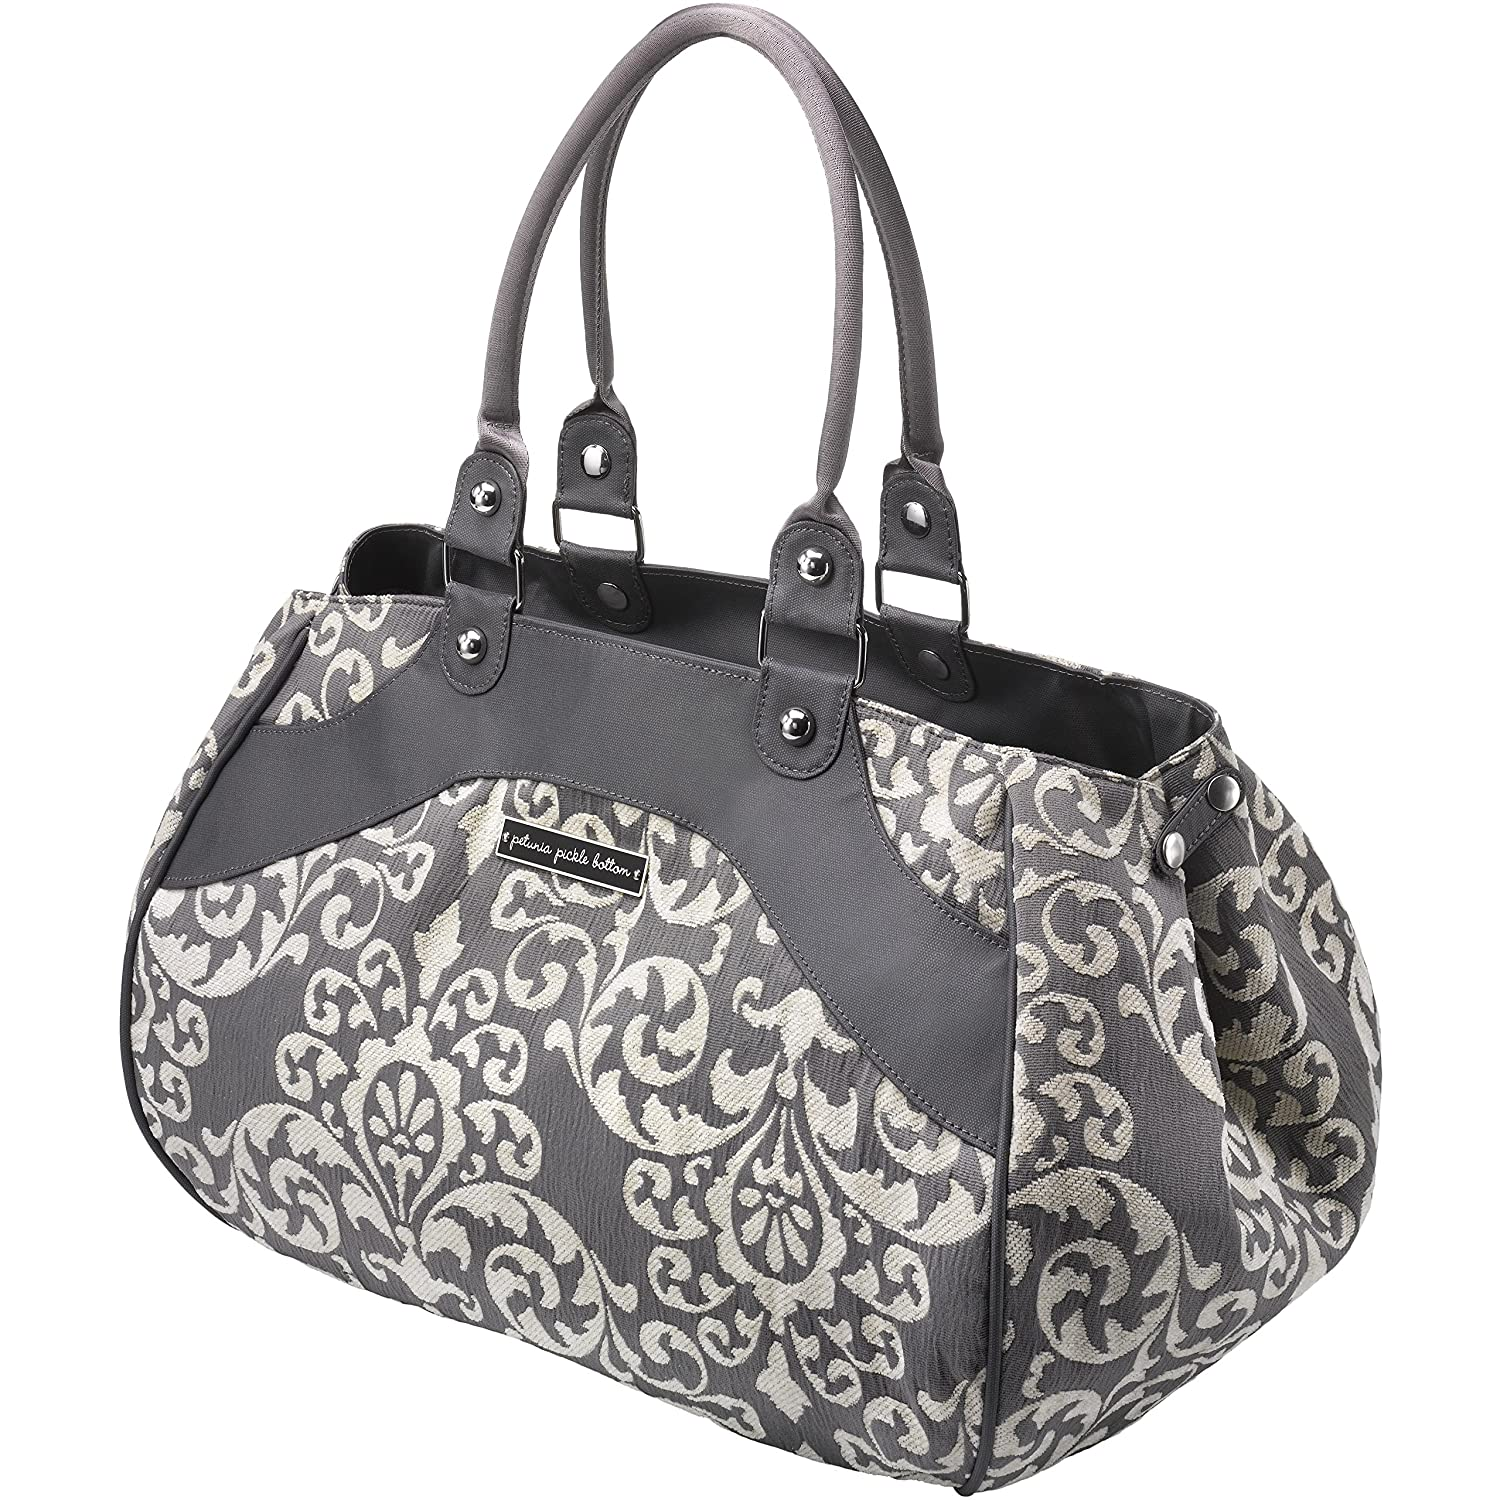 Petunia Pickle Bottom Wistful Weekender Diaper Bag in Earl Grey by Petunia Pickle Bottom B00L9DVVYG